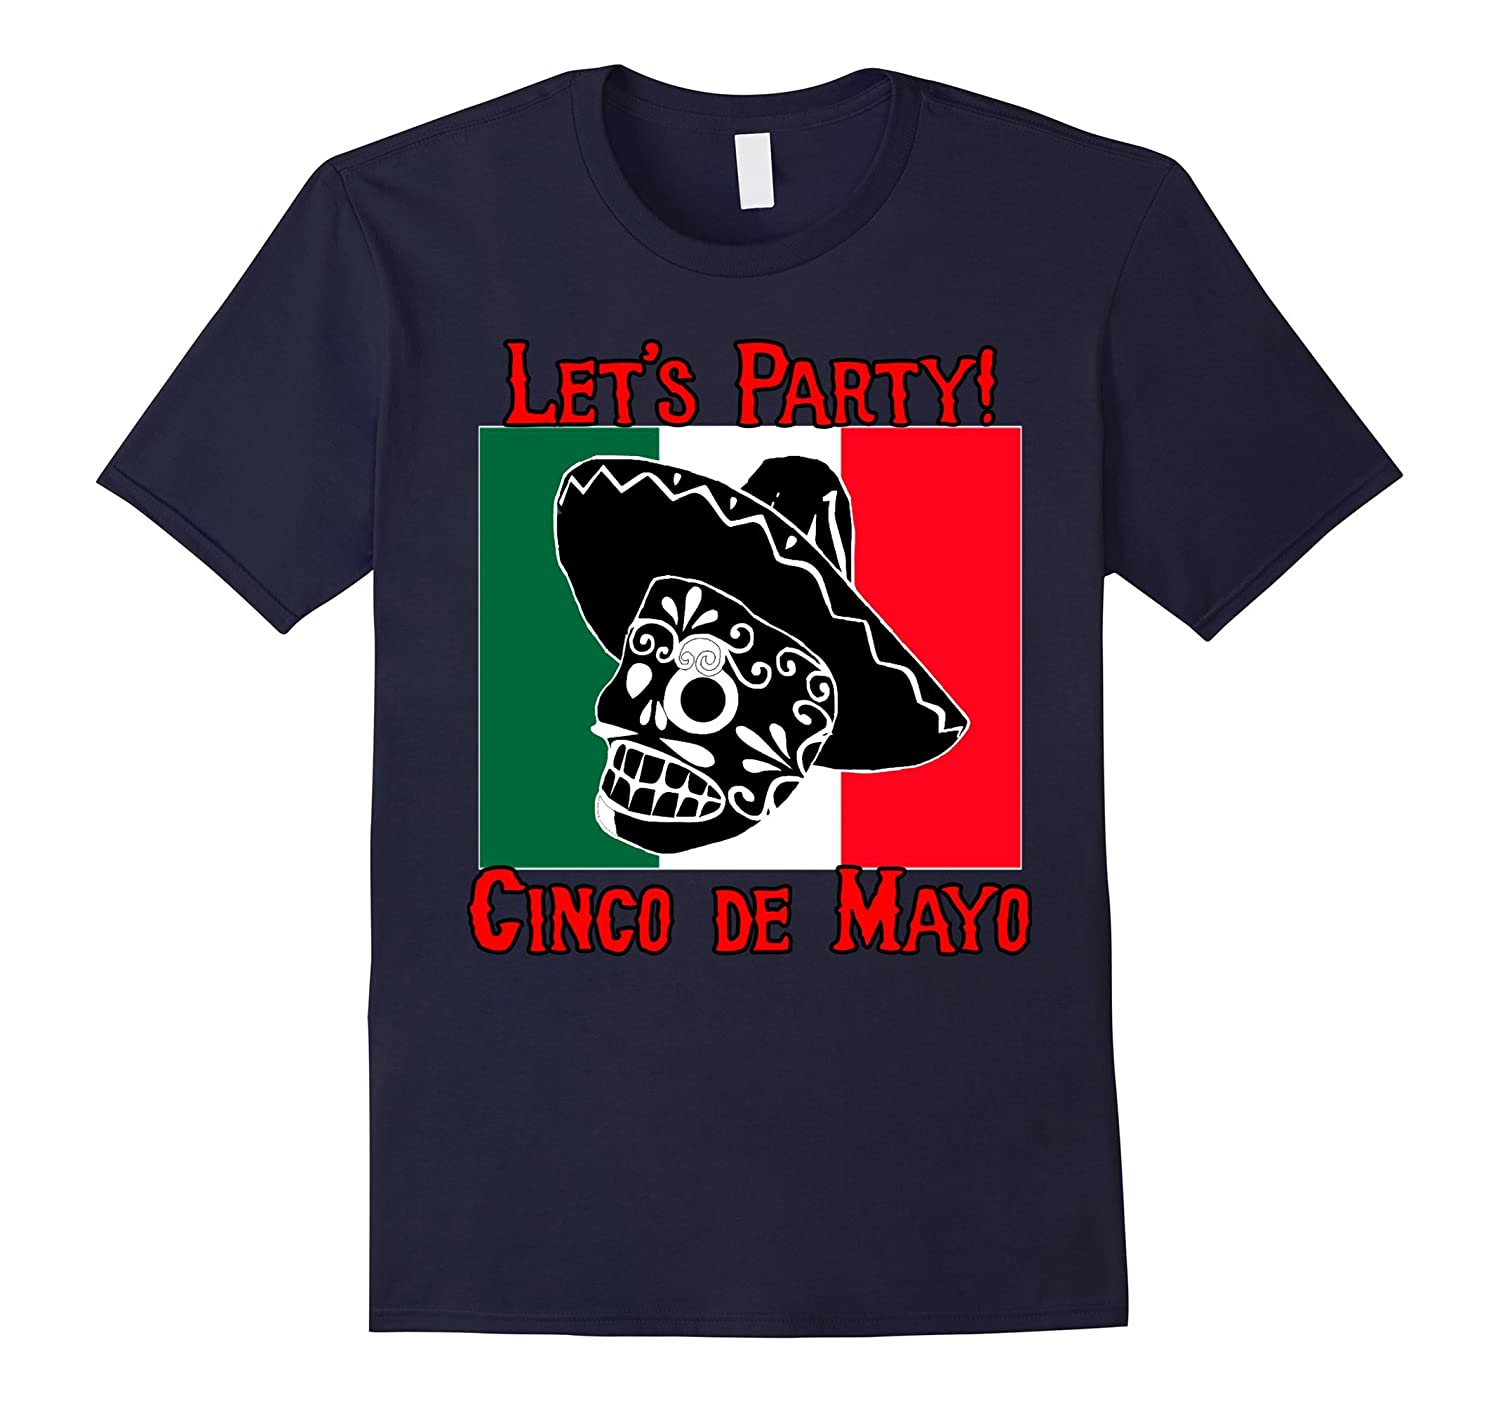 Cinco De Mayo Party T-shirt by Scarebaby-TH